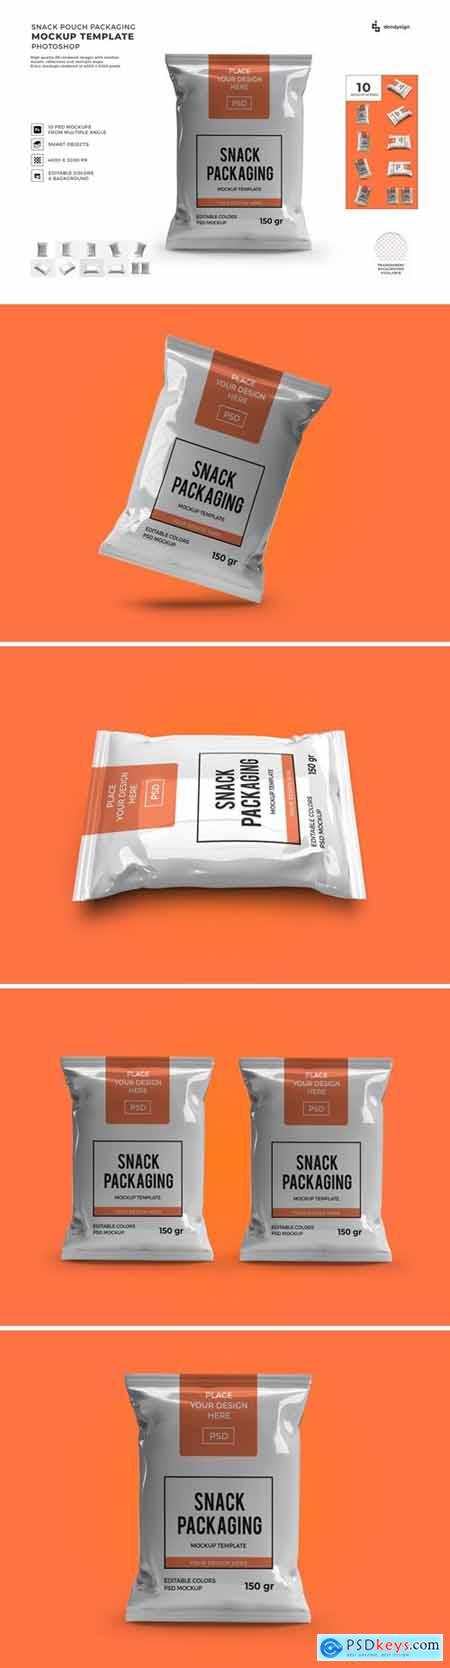 Snack Pouch Packaging Mockup Template Set